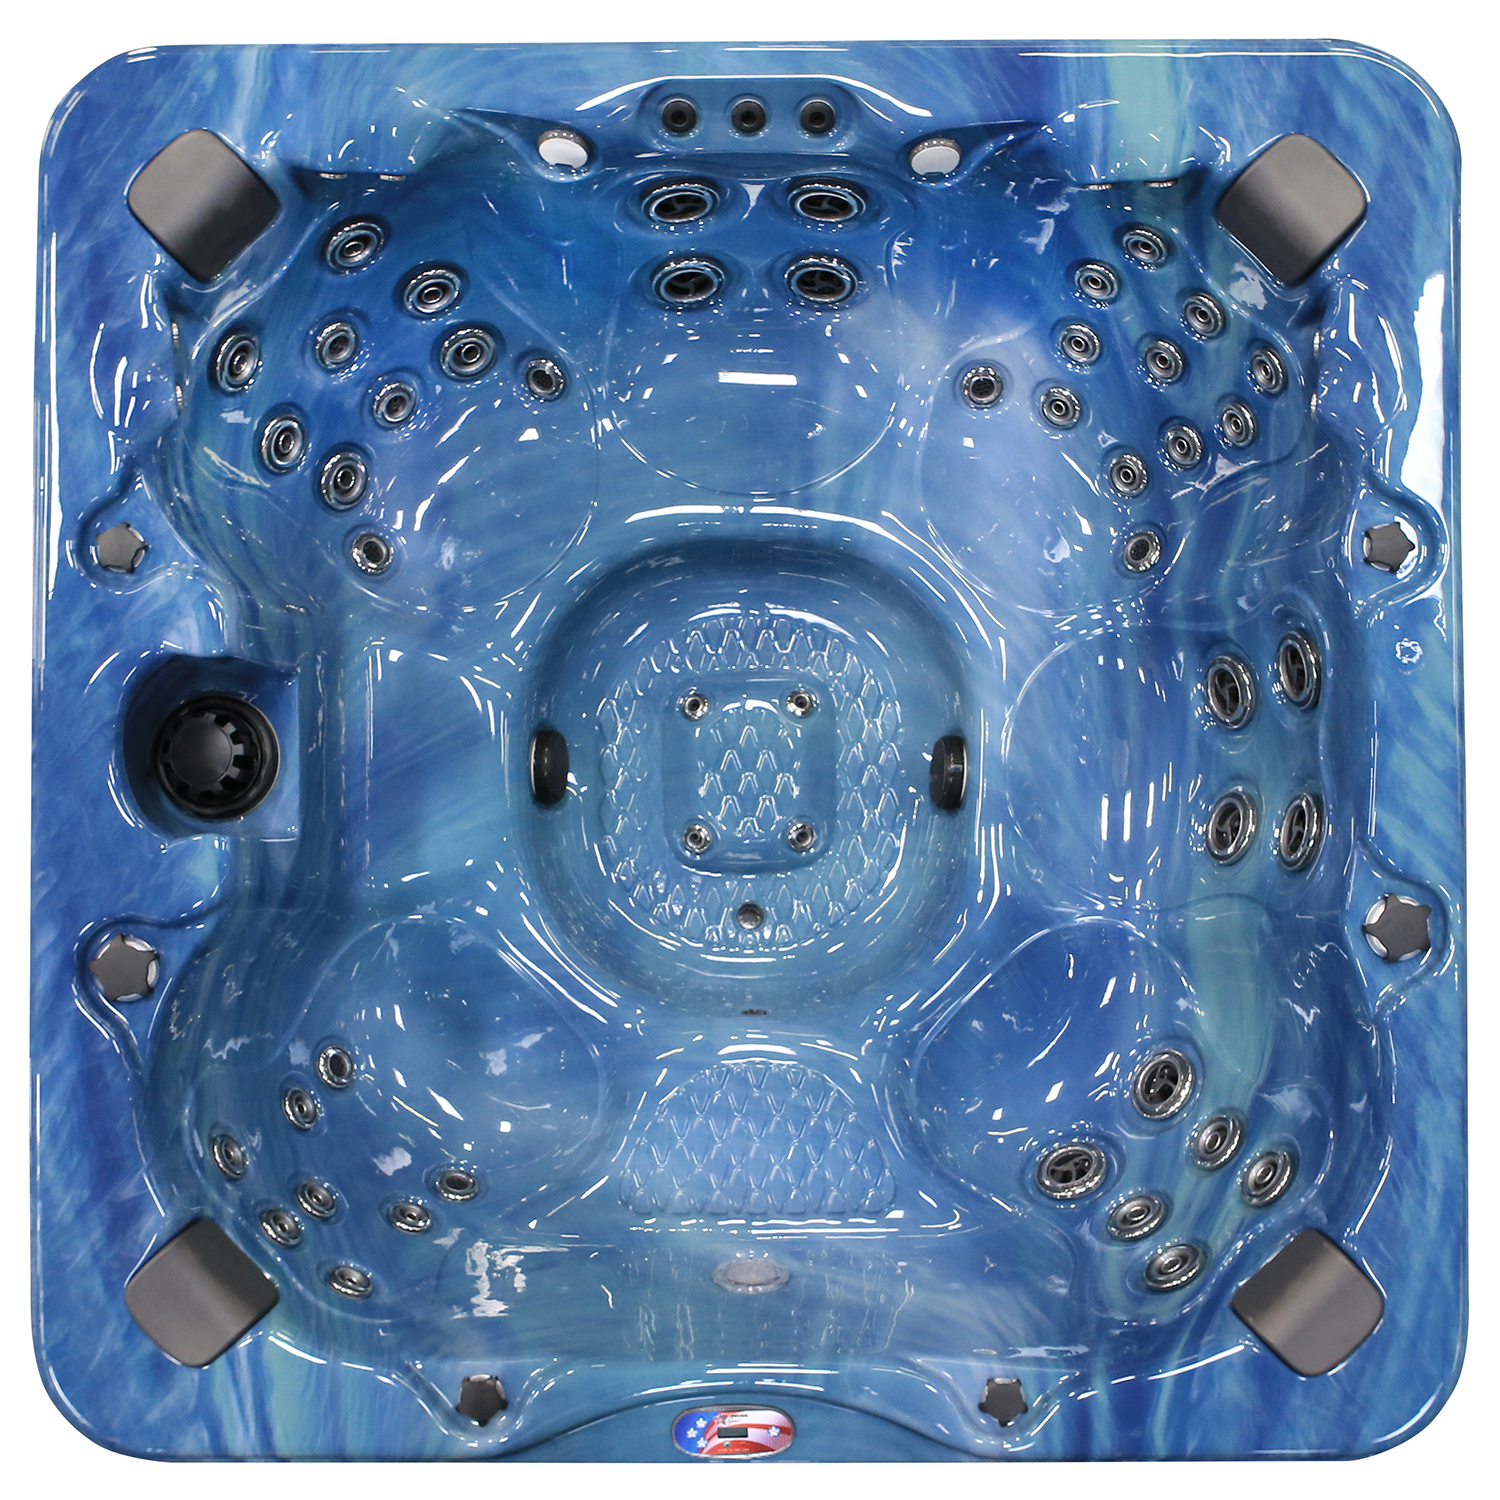 6-Person 56-Jet Bench Spa with Bluetooth Stereo System, Subwoofer and Backlit LED... by Hot Tubs